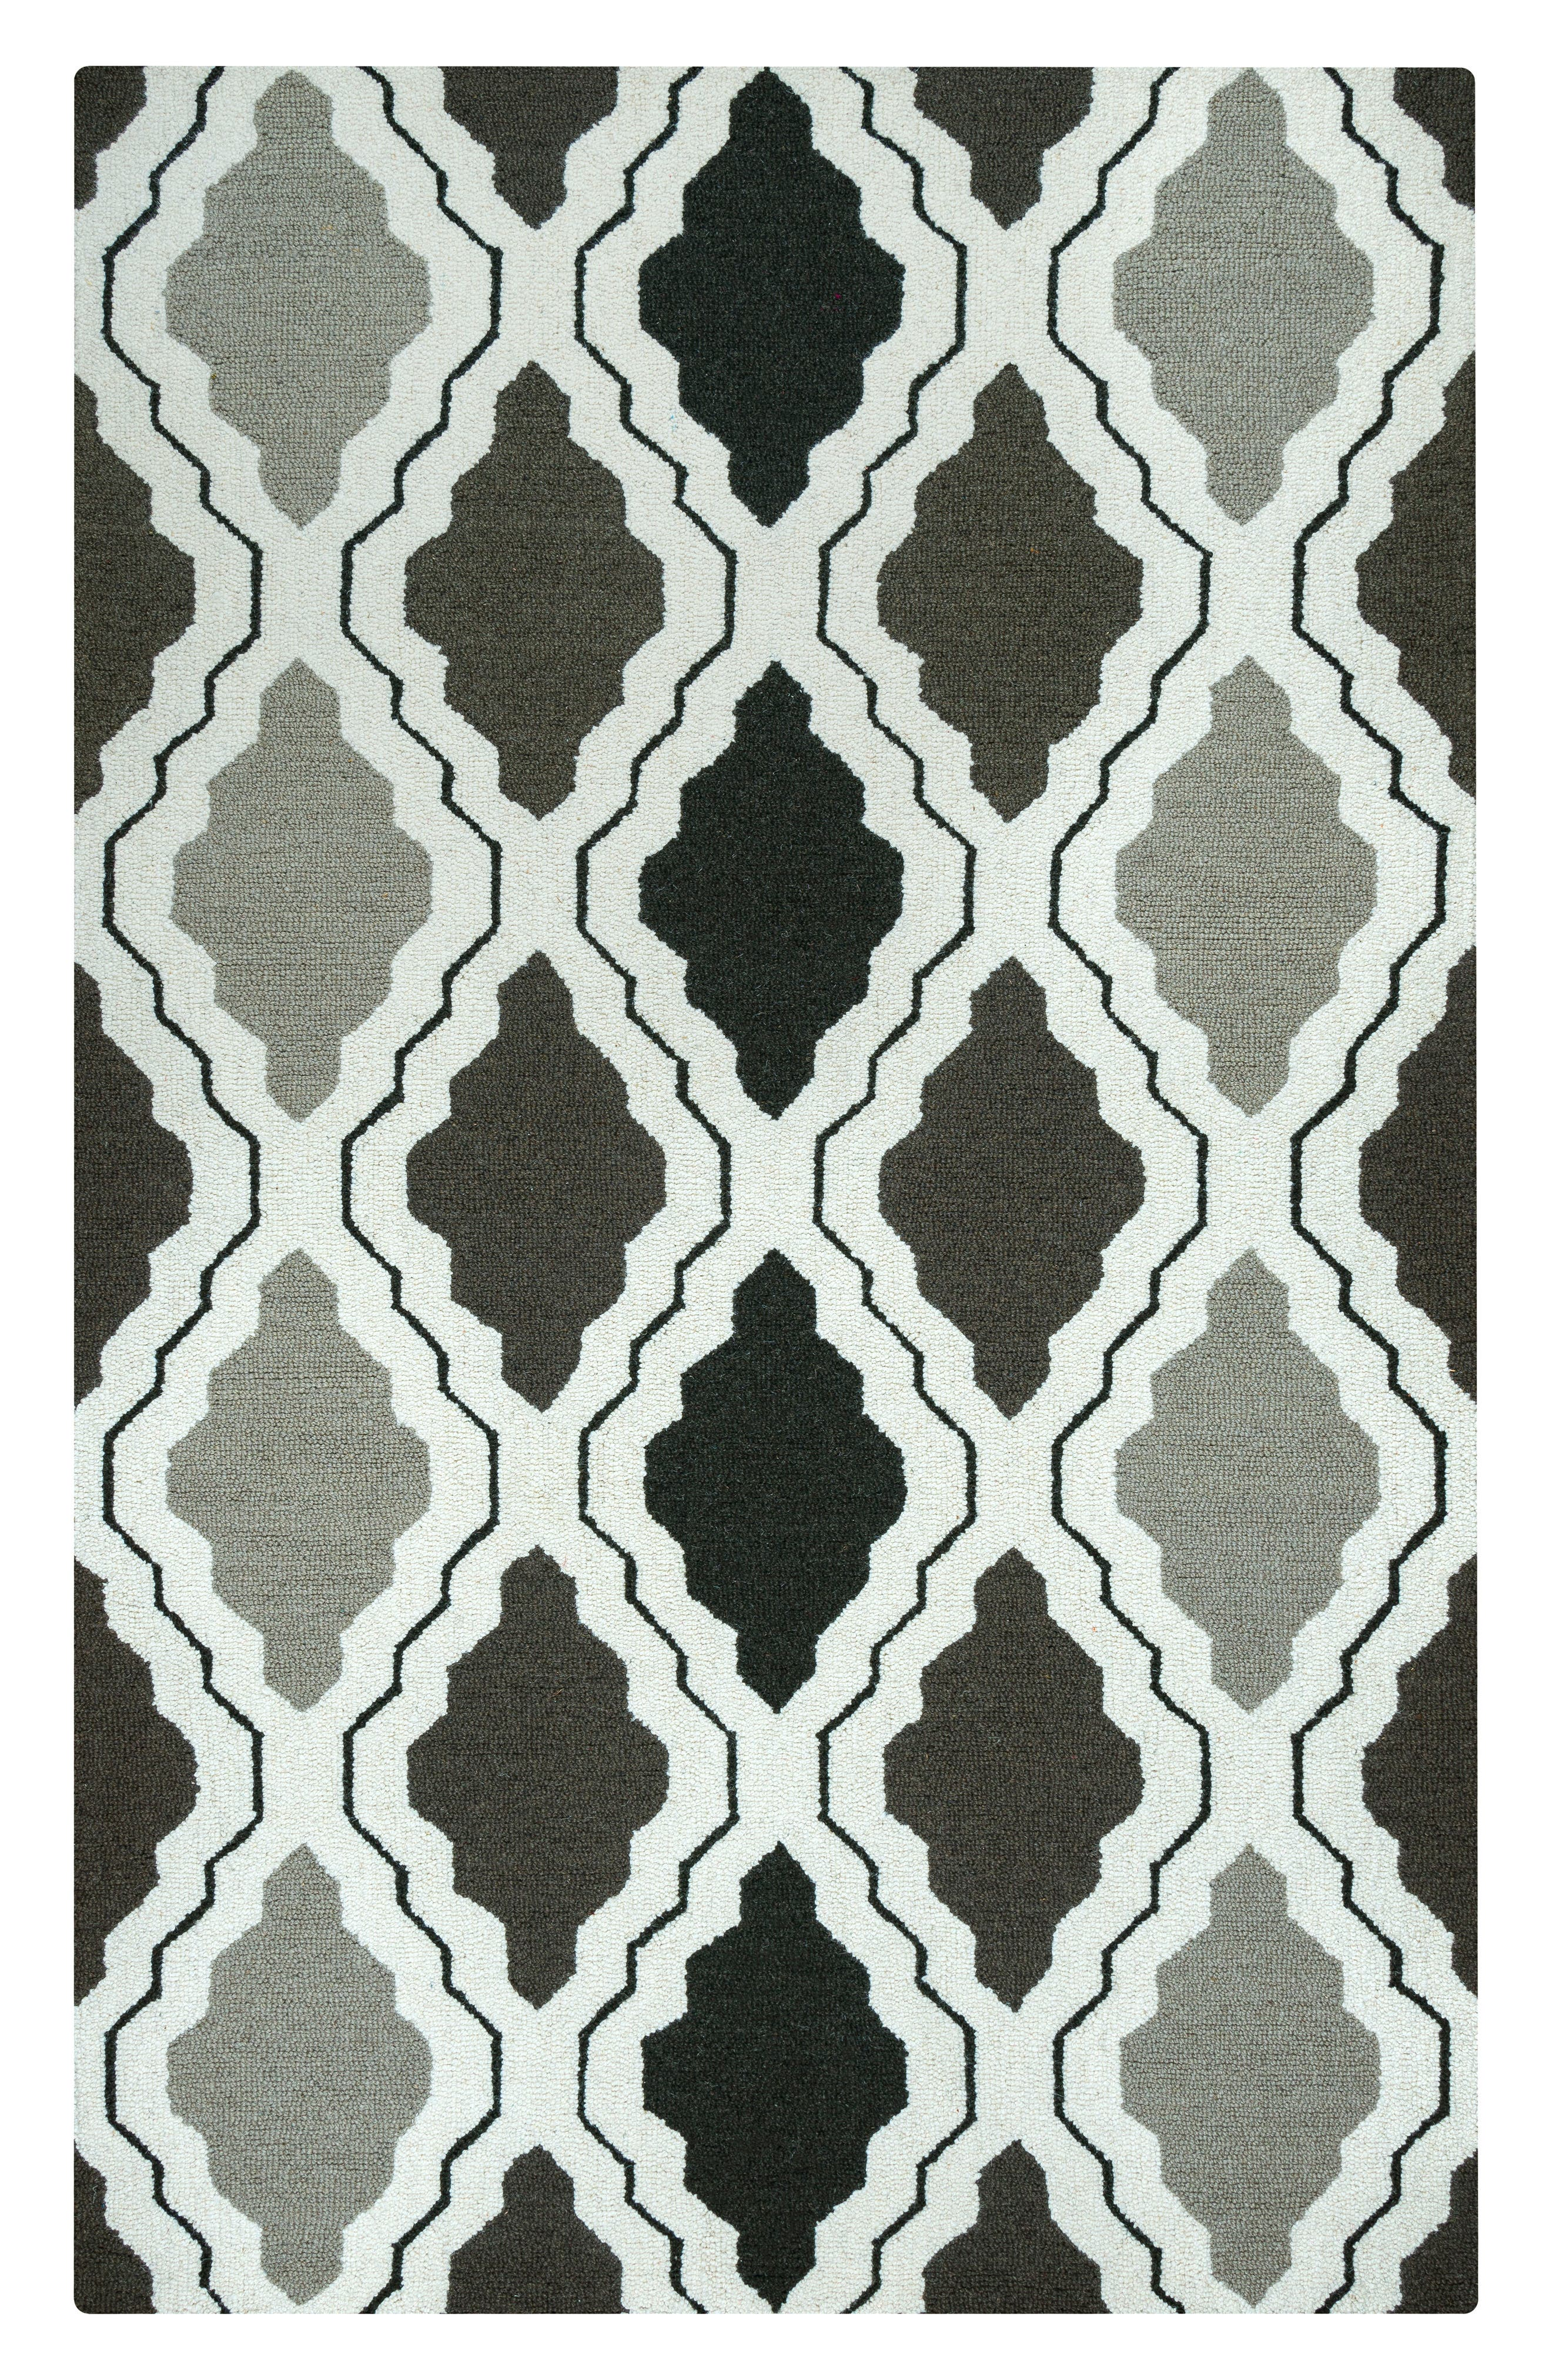 'Ogee' Wool Area Rug,                             Alternate thumbnail 2, color,                             030